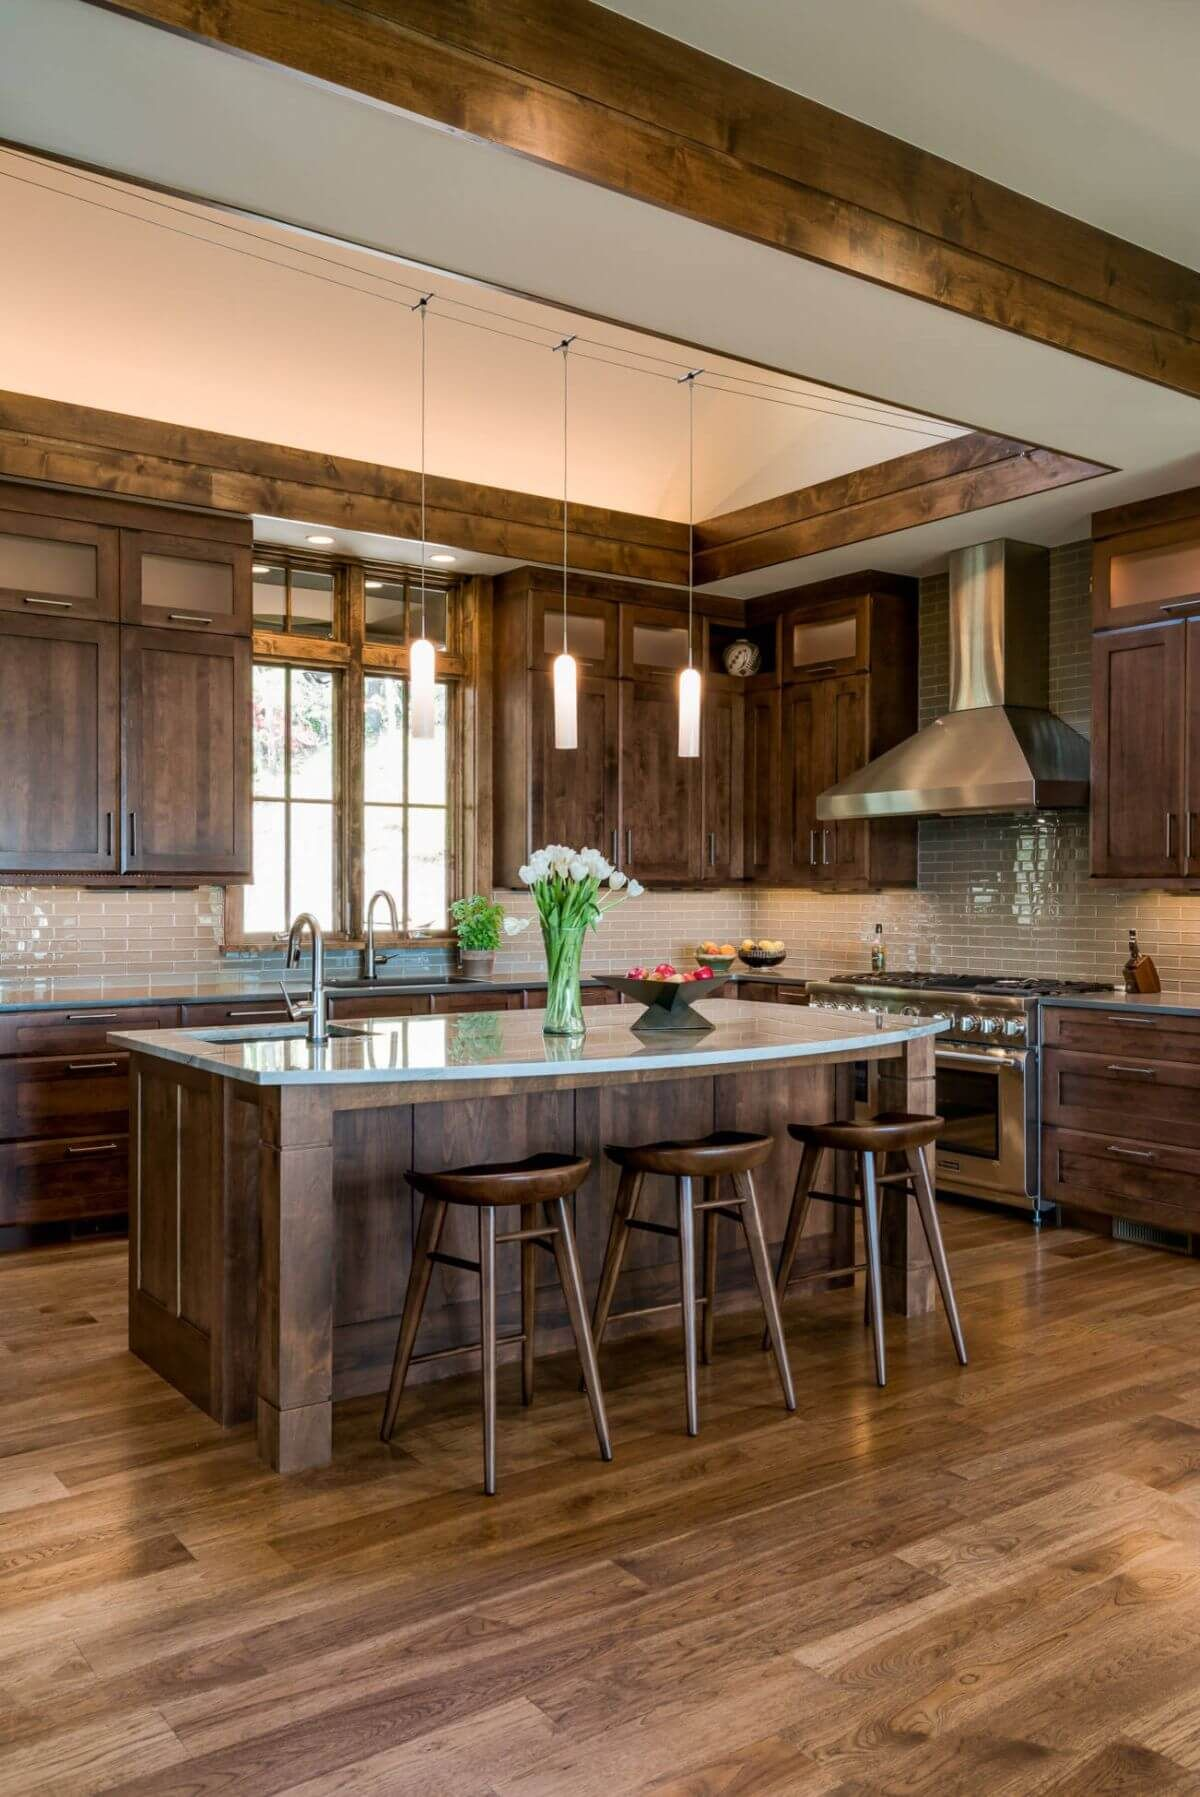 23 Best Ideas Of Rustic Kitchen Cabinet You Ll Want To Copy In 2020 Affordable Rustic Kitchen Rustic Kitchen Rustic Kitchen Design